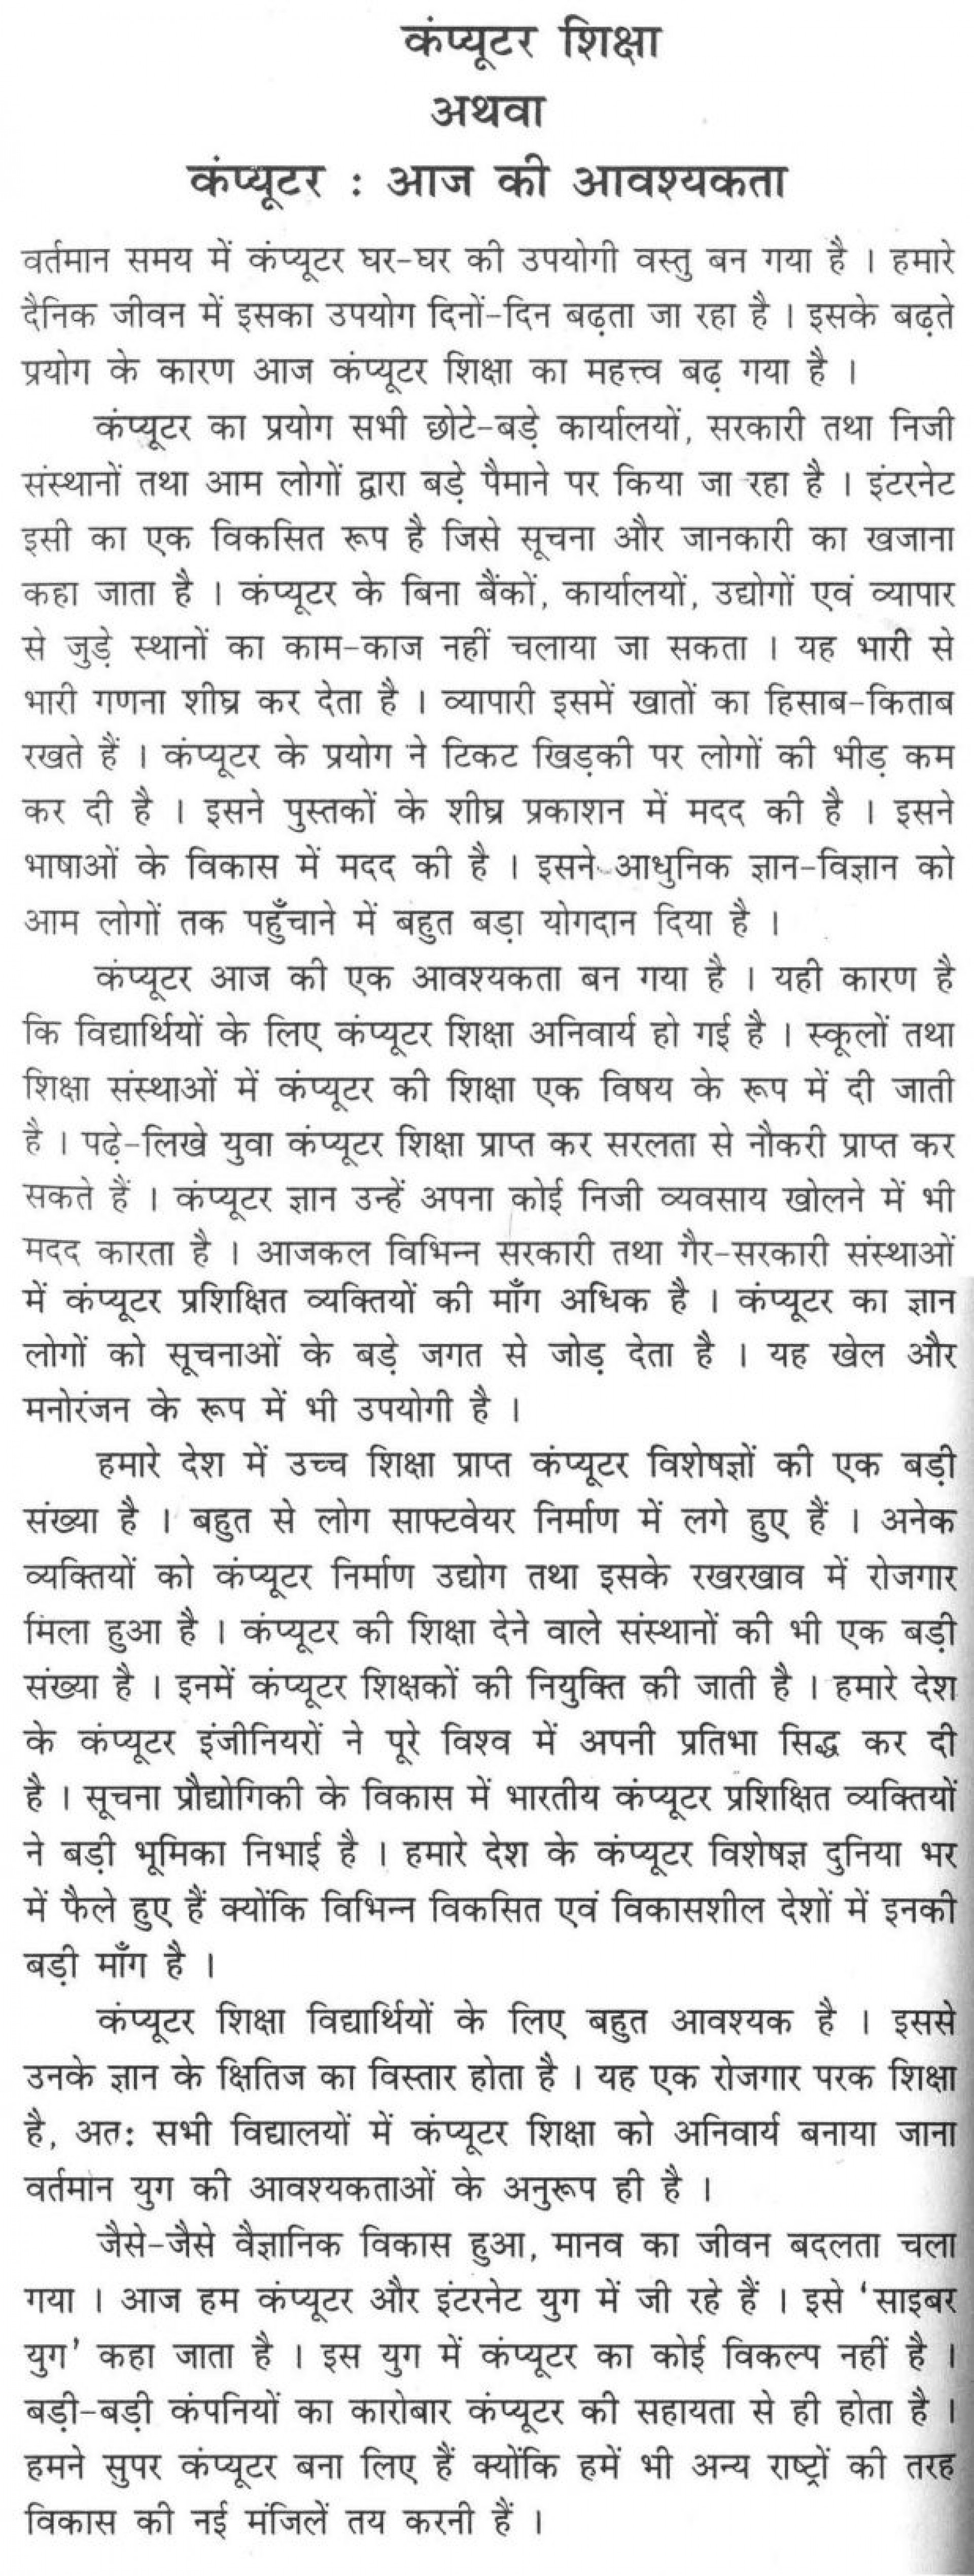 012 Essay Computer Technology Thumb Argumentative On Good Or In Hindi Education Boon Short Topics Latest Urdu Science And 618x1635 Fearsome 1920